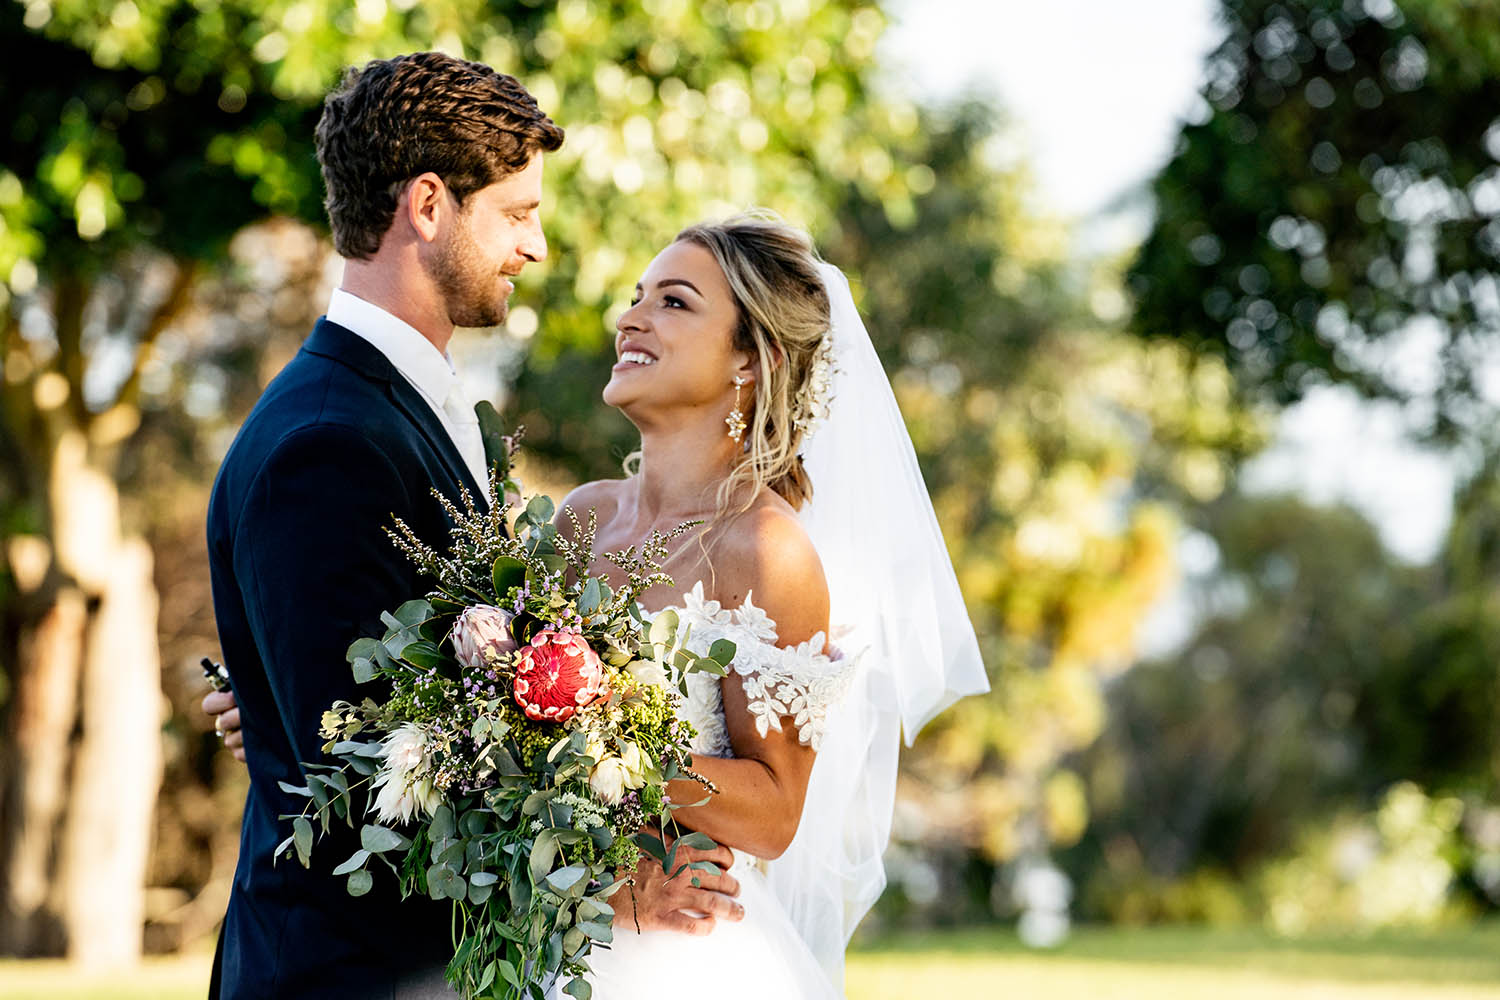 Wedding Photography - Couple with boquet